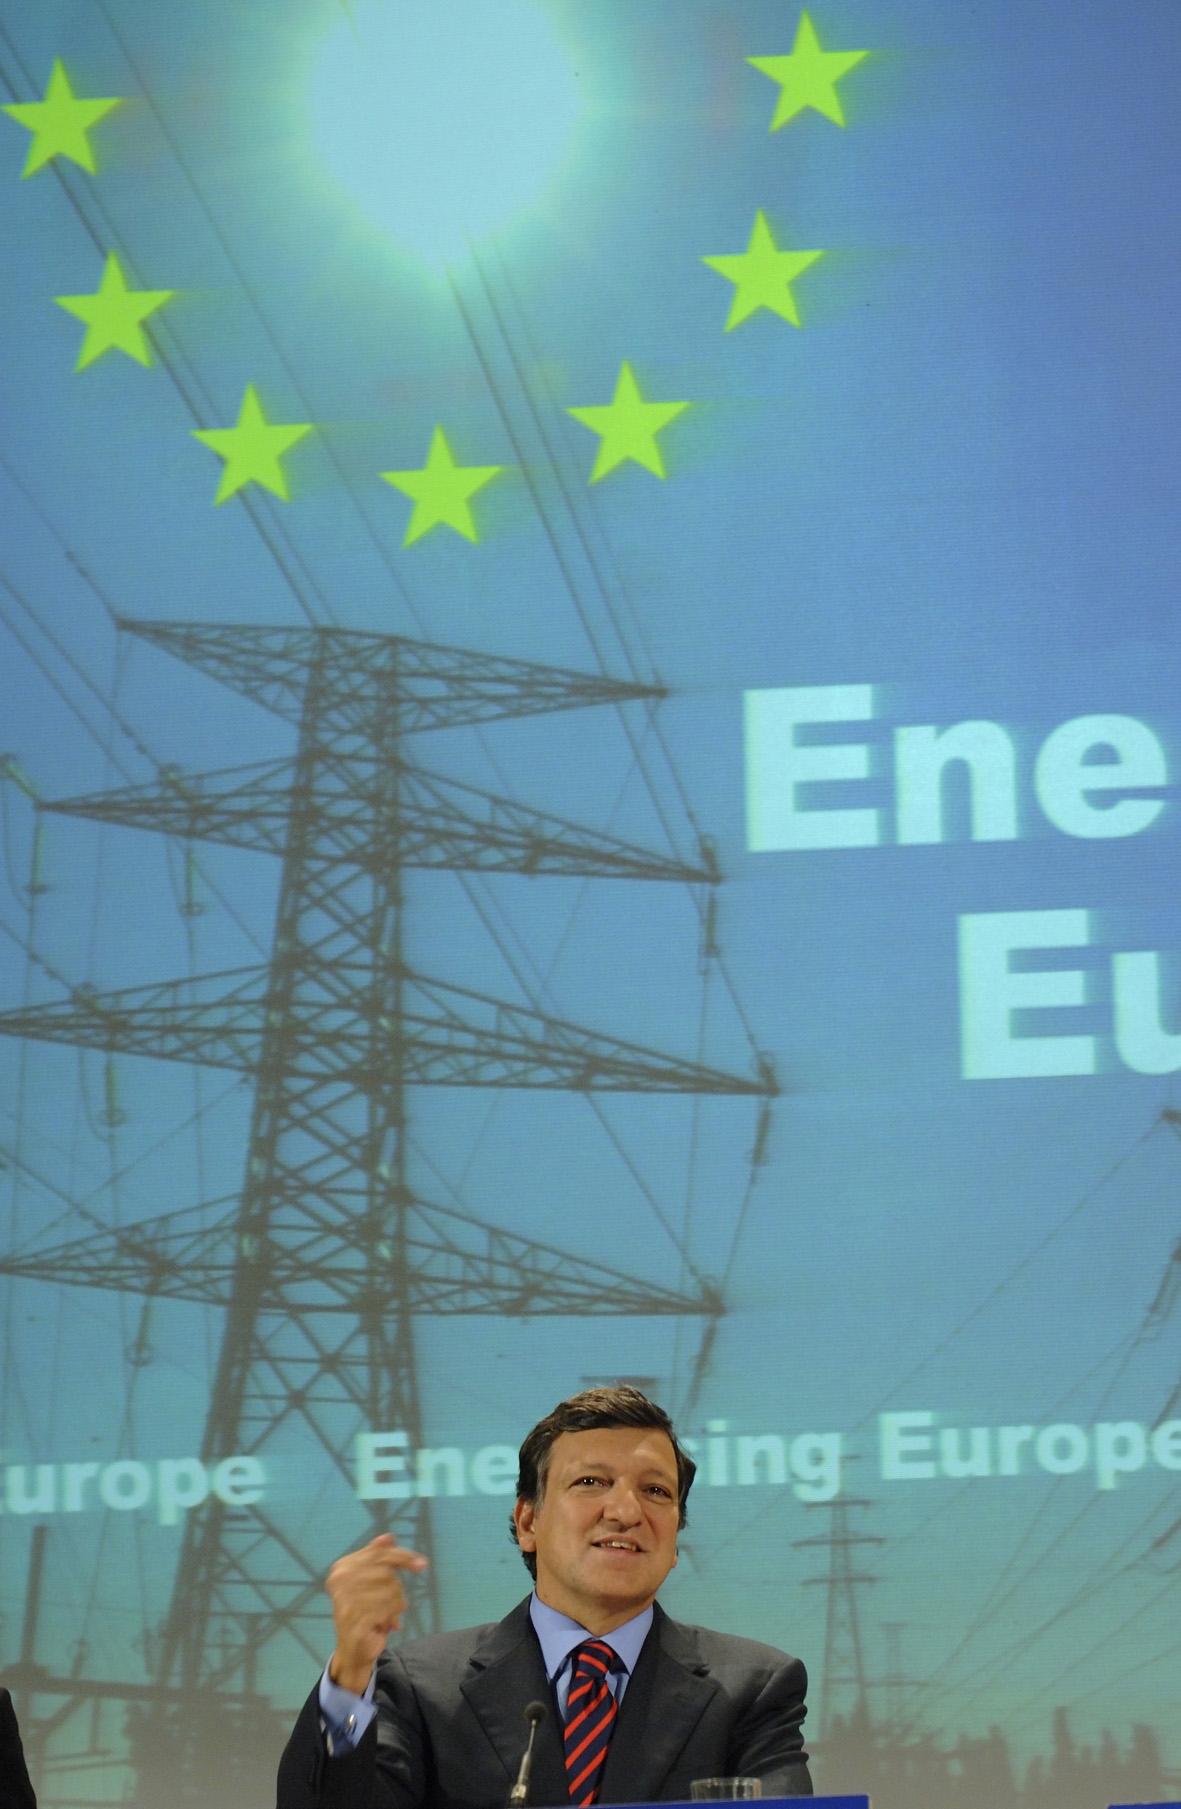 Press conference by José Manuel Barroso on the internal market energy package